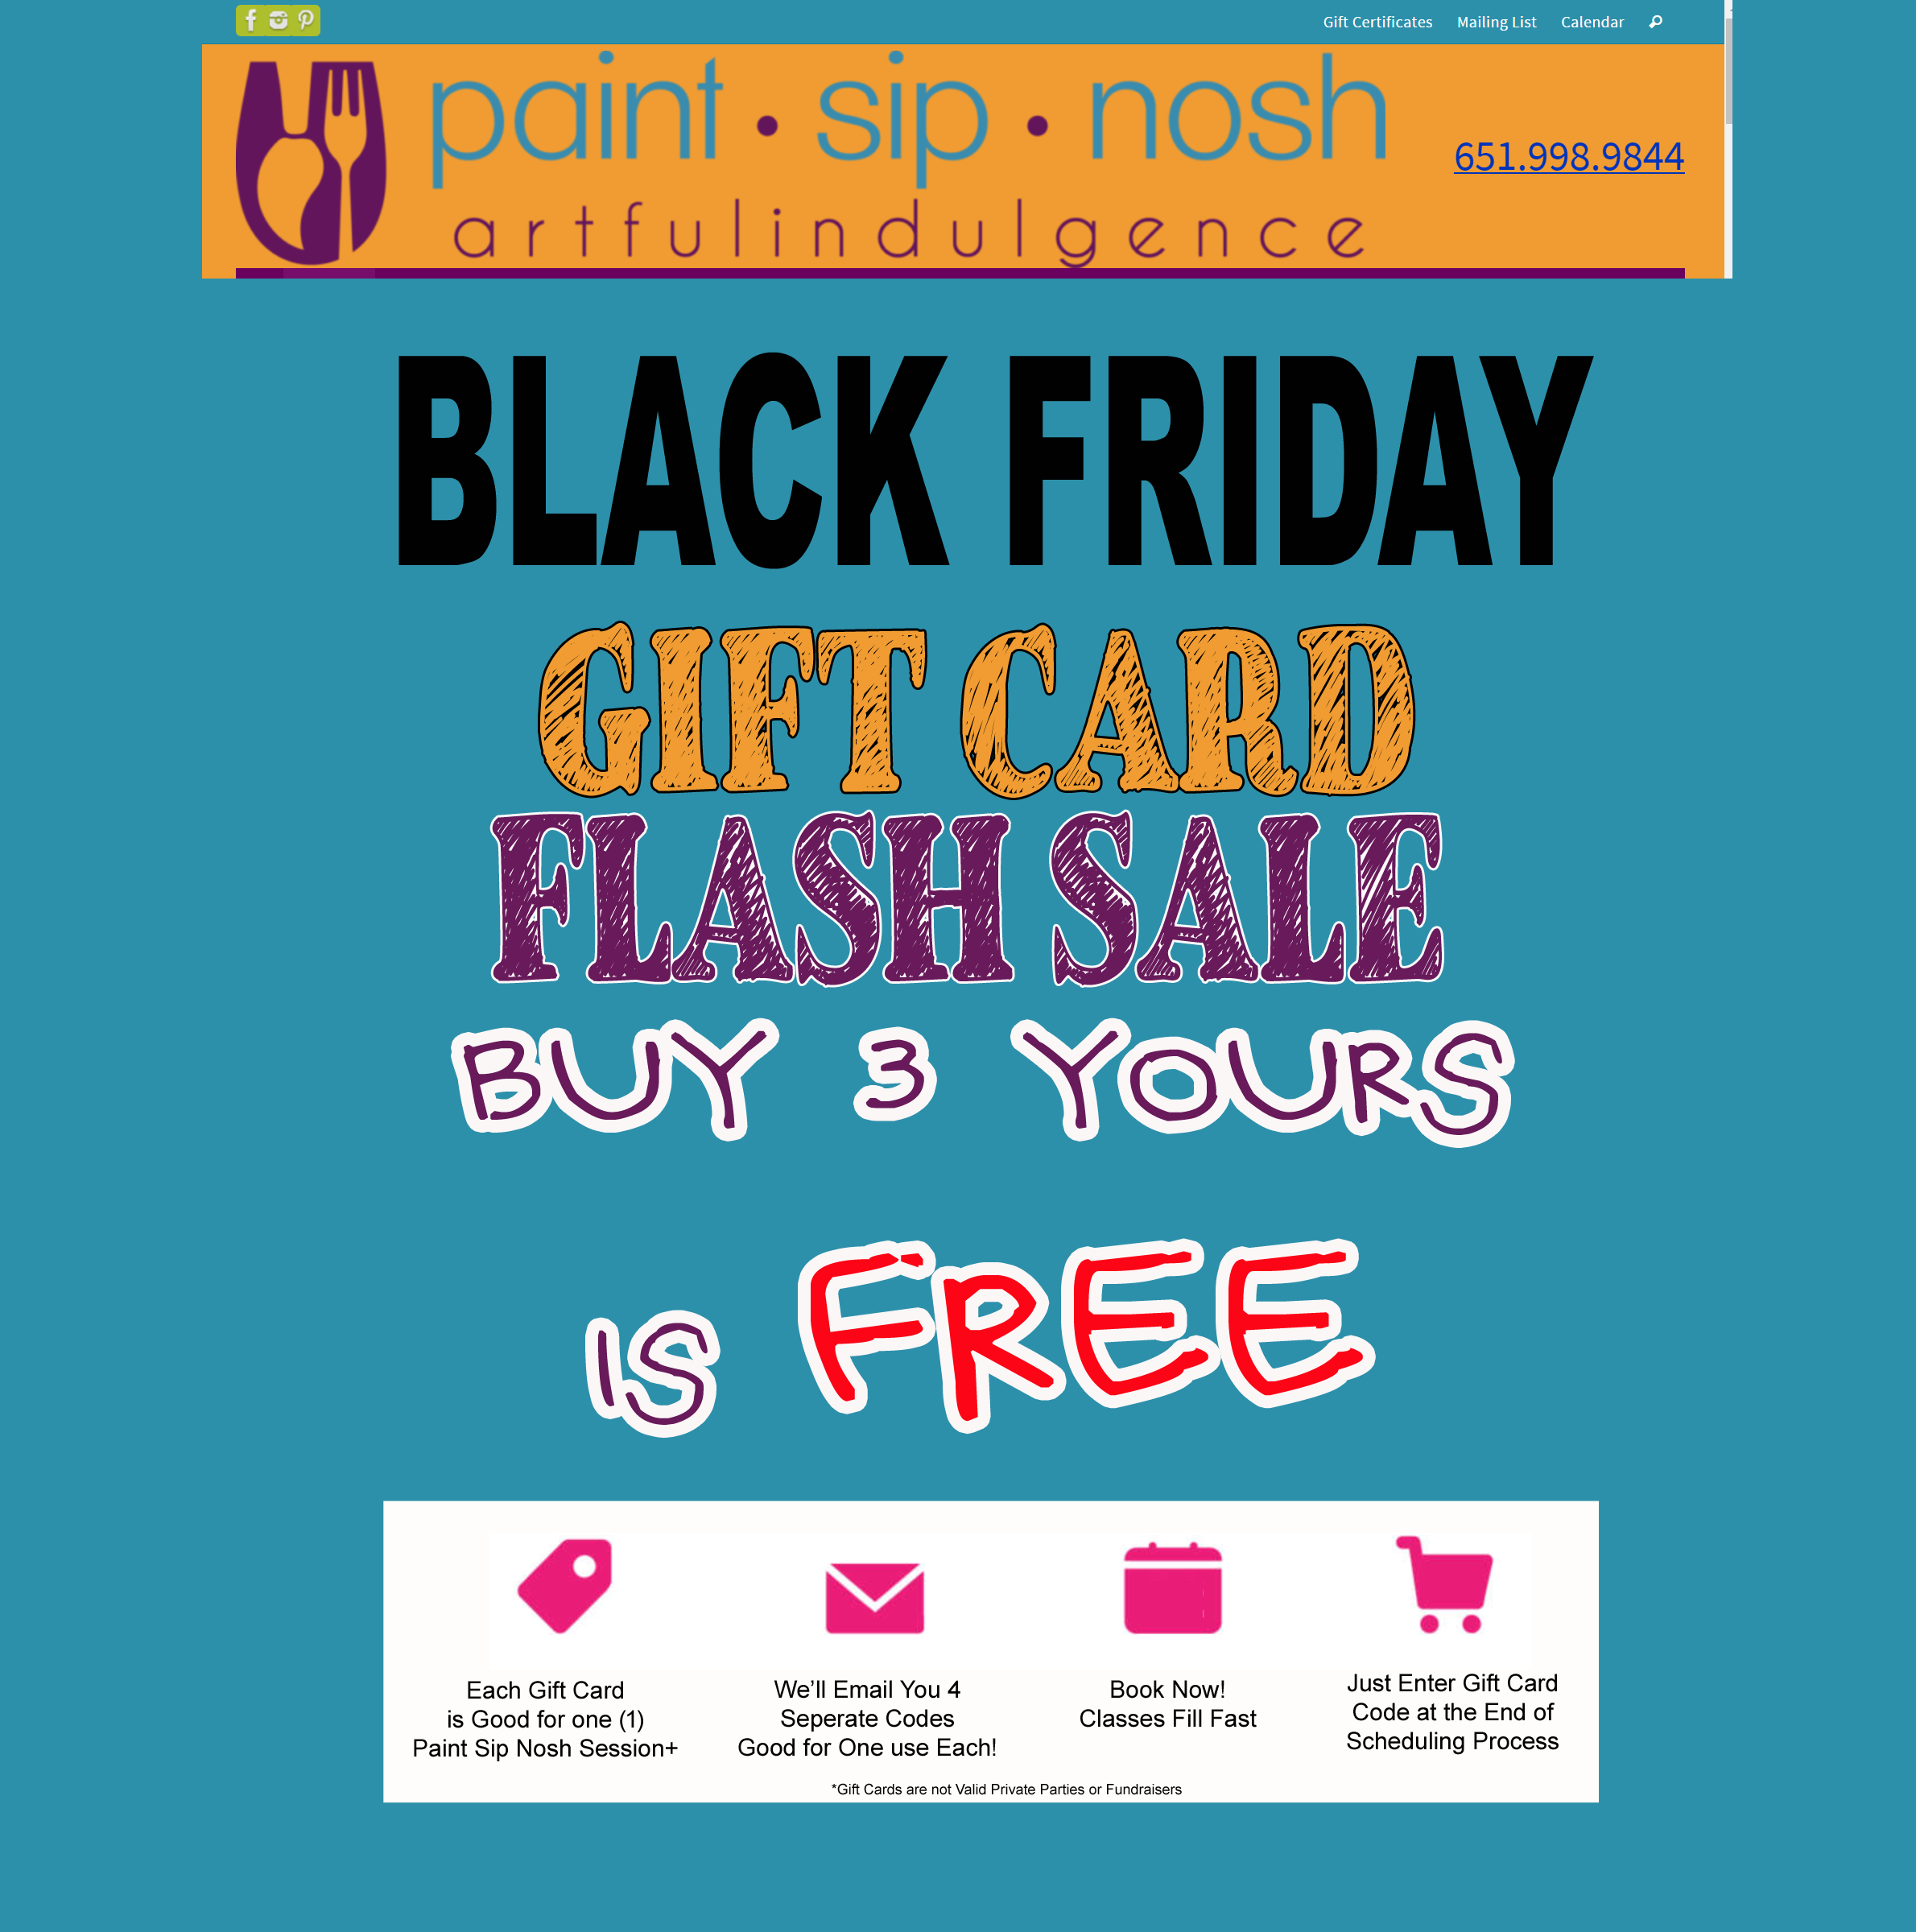 With Black Friday Sales making headlines and top stores and restaurants getting antsy for your gift card spending, I expect to making several updates to this blog post. Just remember, often times these deals are only good while supplies last.